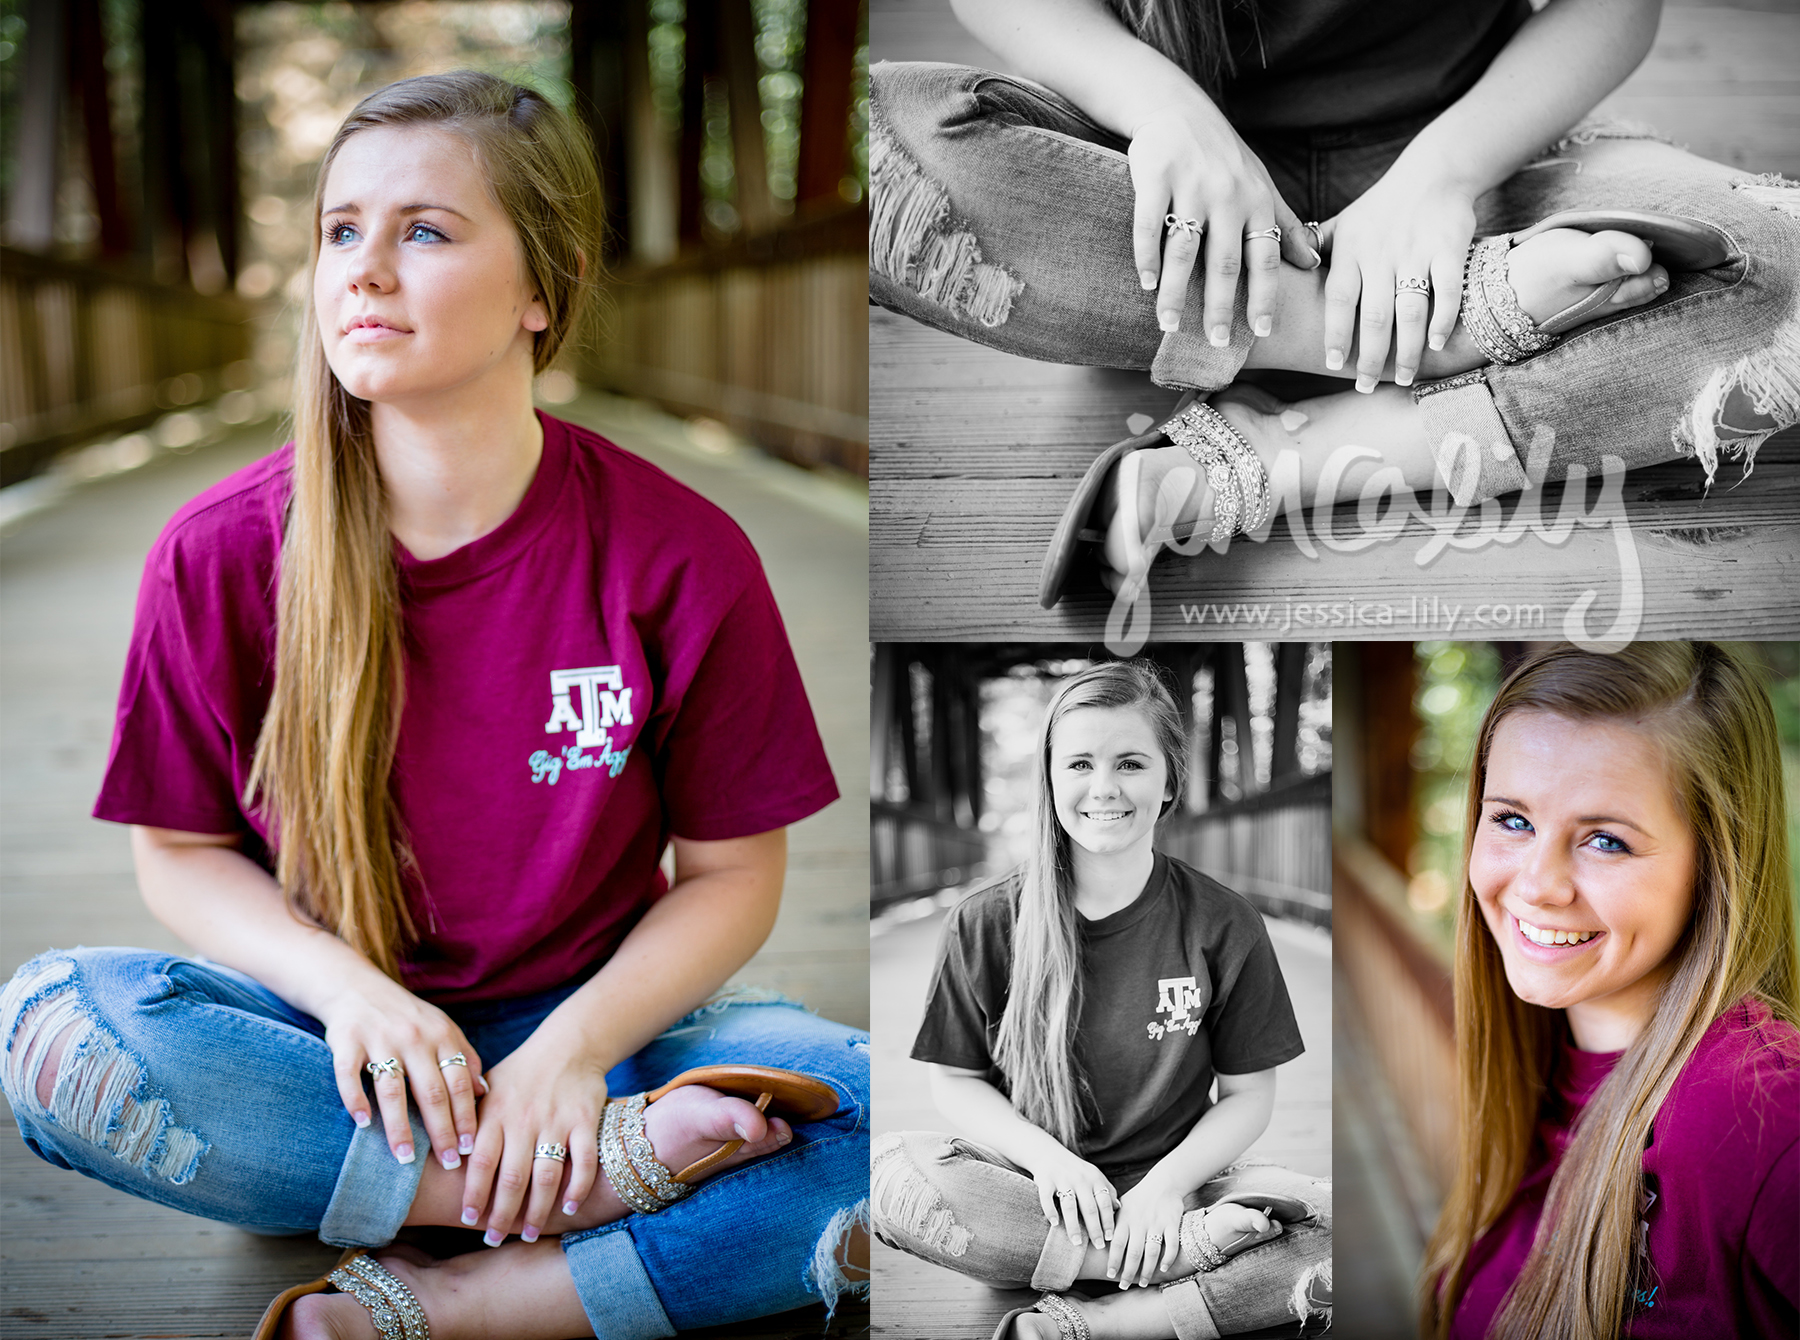 Meghan at the Roswell Mill -Senior Portraits with Jessica Lily